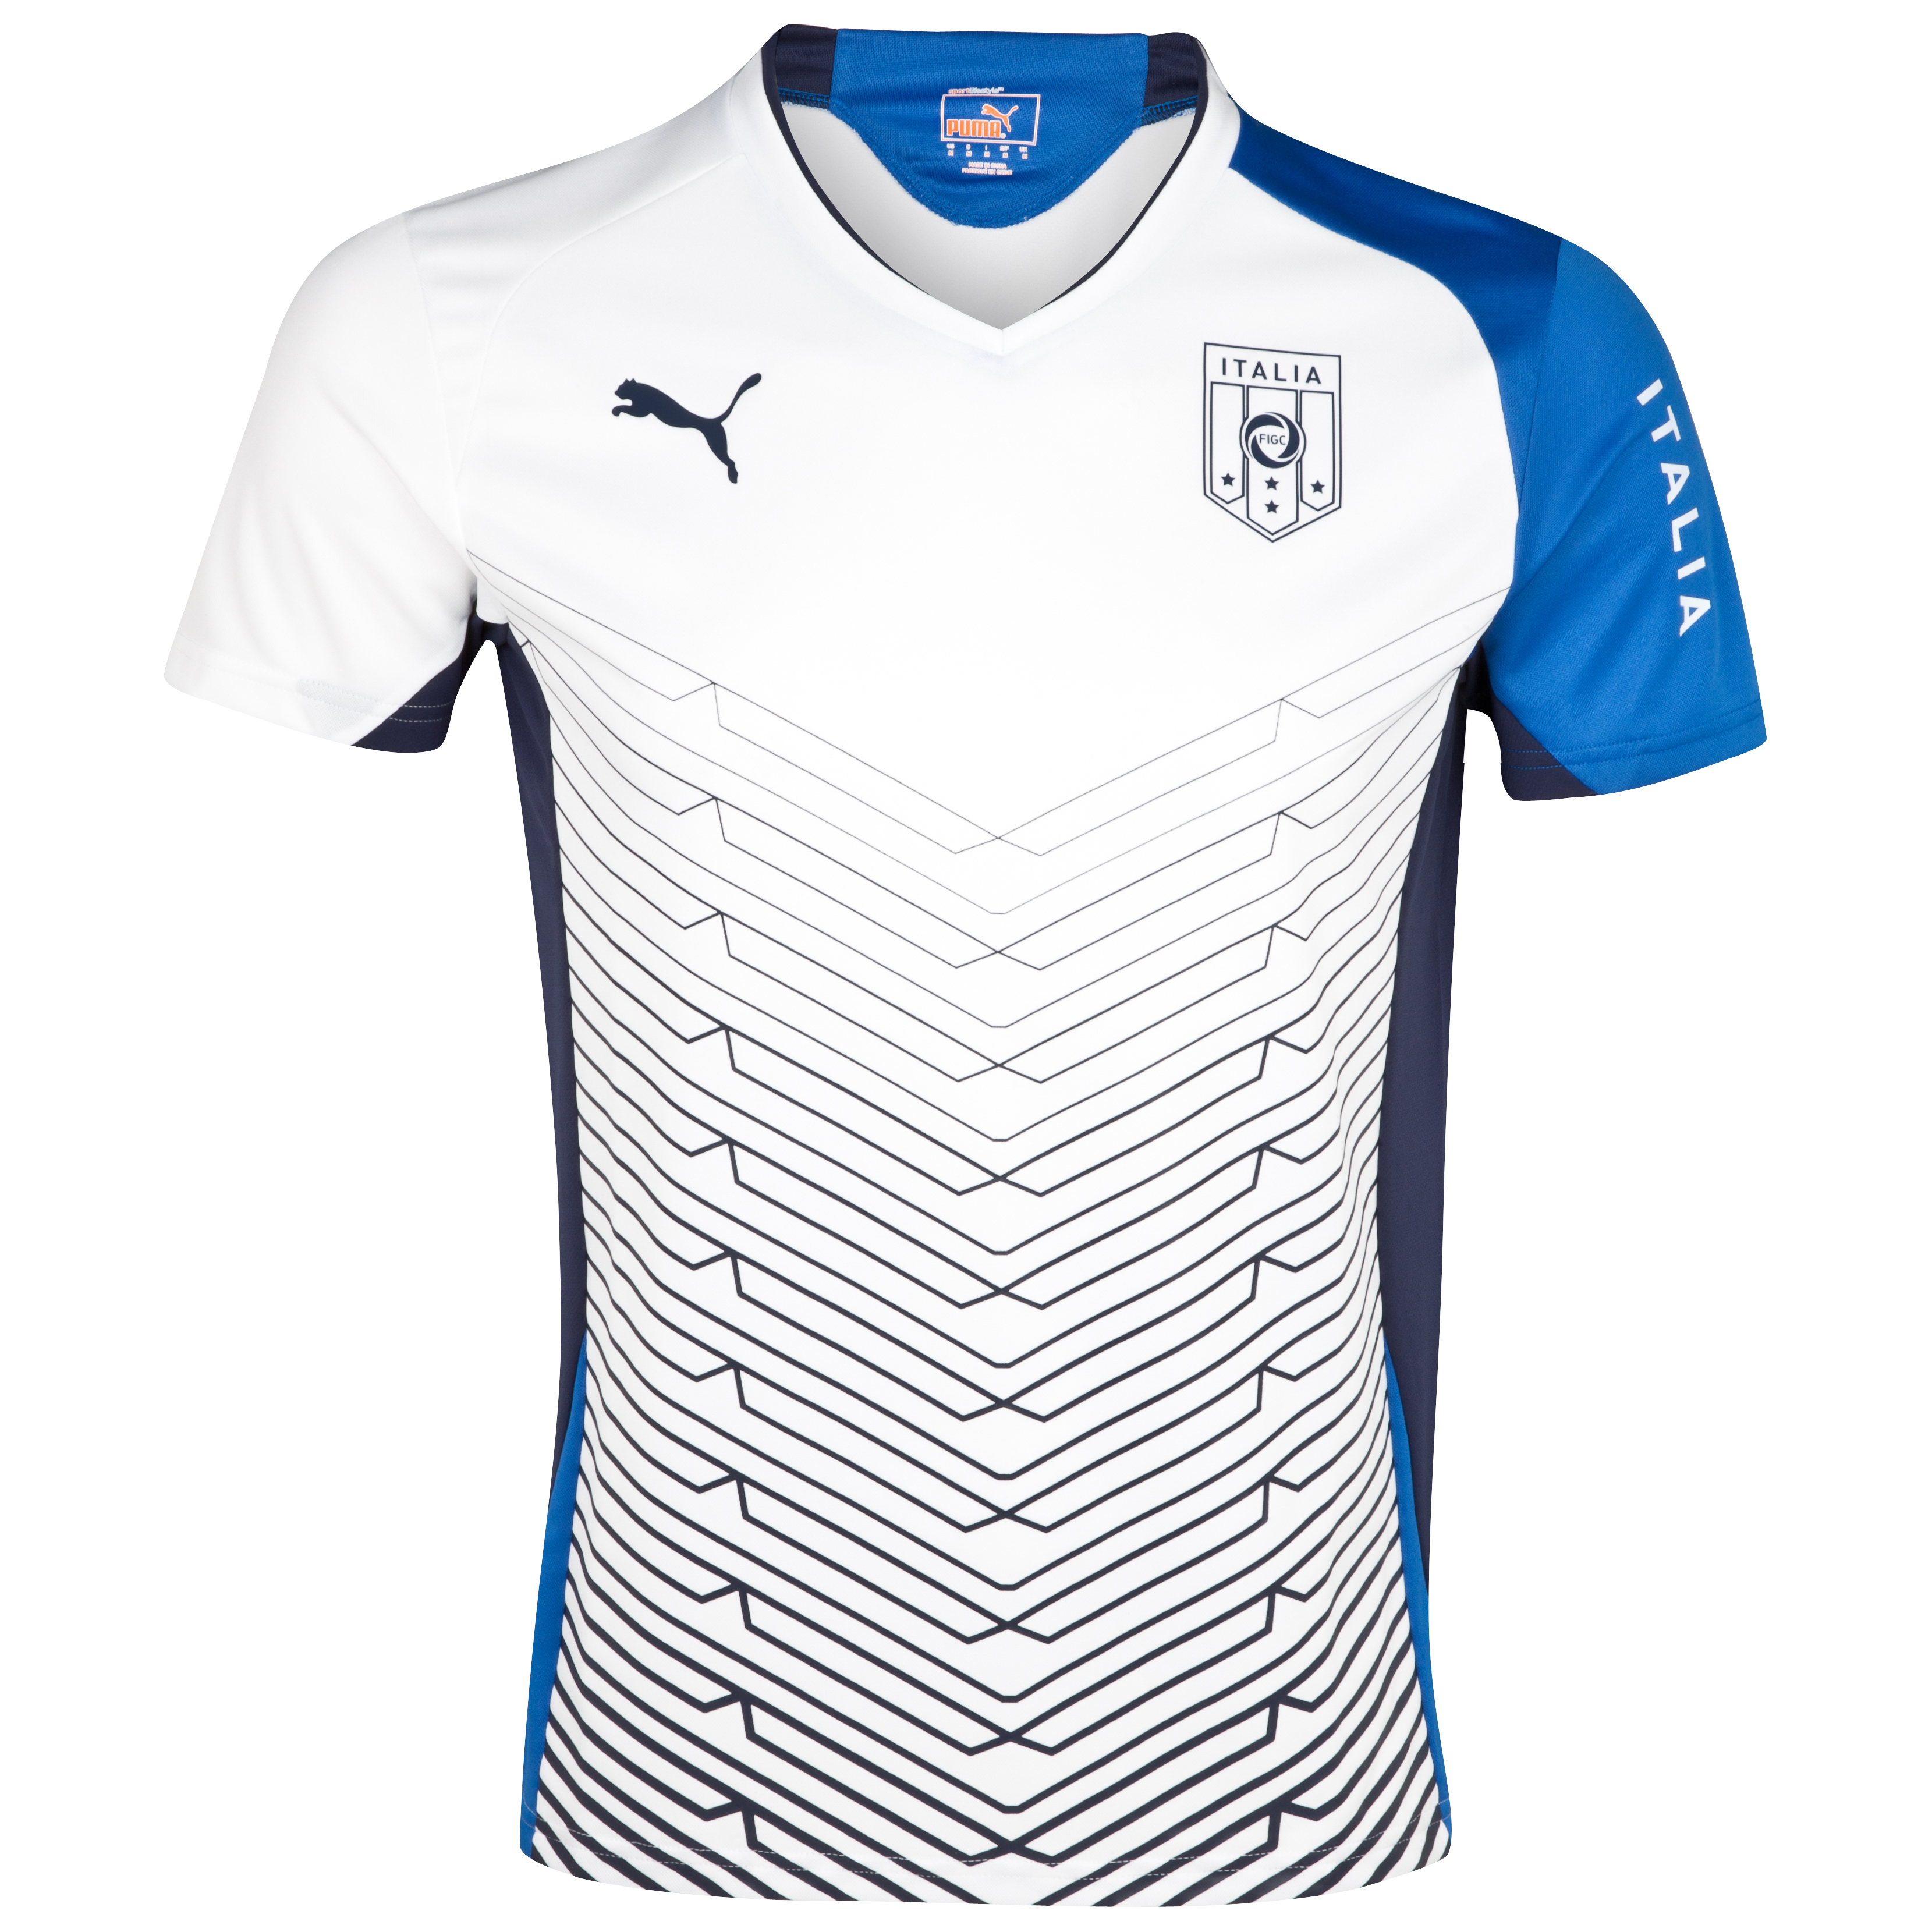 Puma Italy Training T-Shirt  - Navy/White